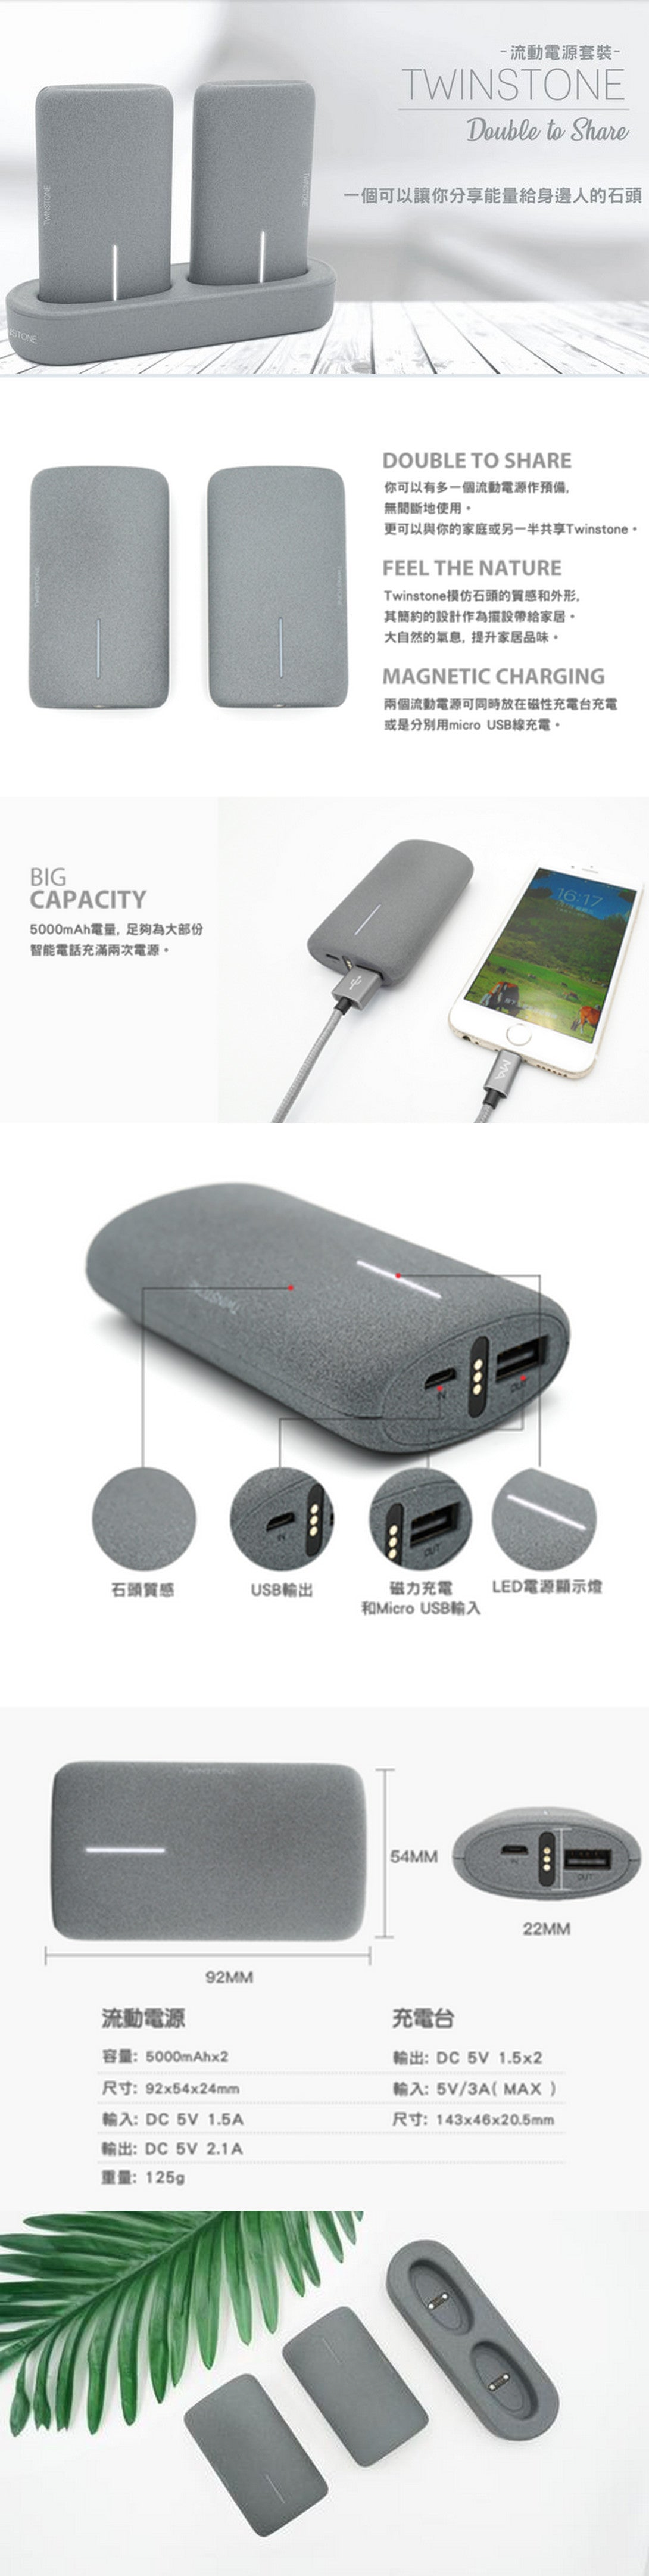 twinstone-synchronous-charging-double-energy-magnetic-charging-set